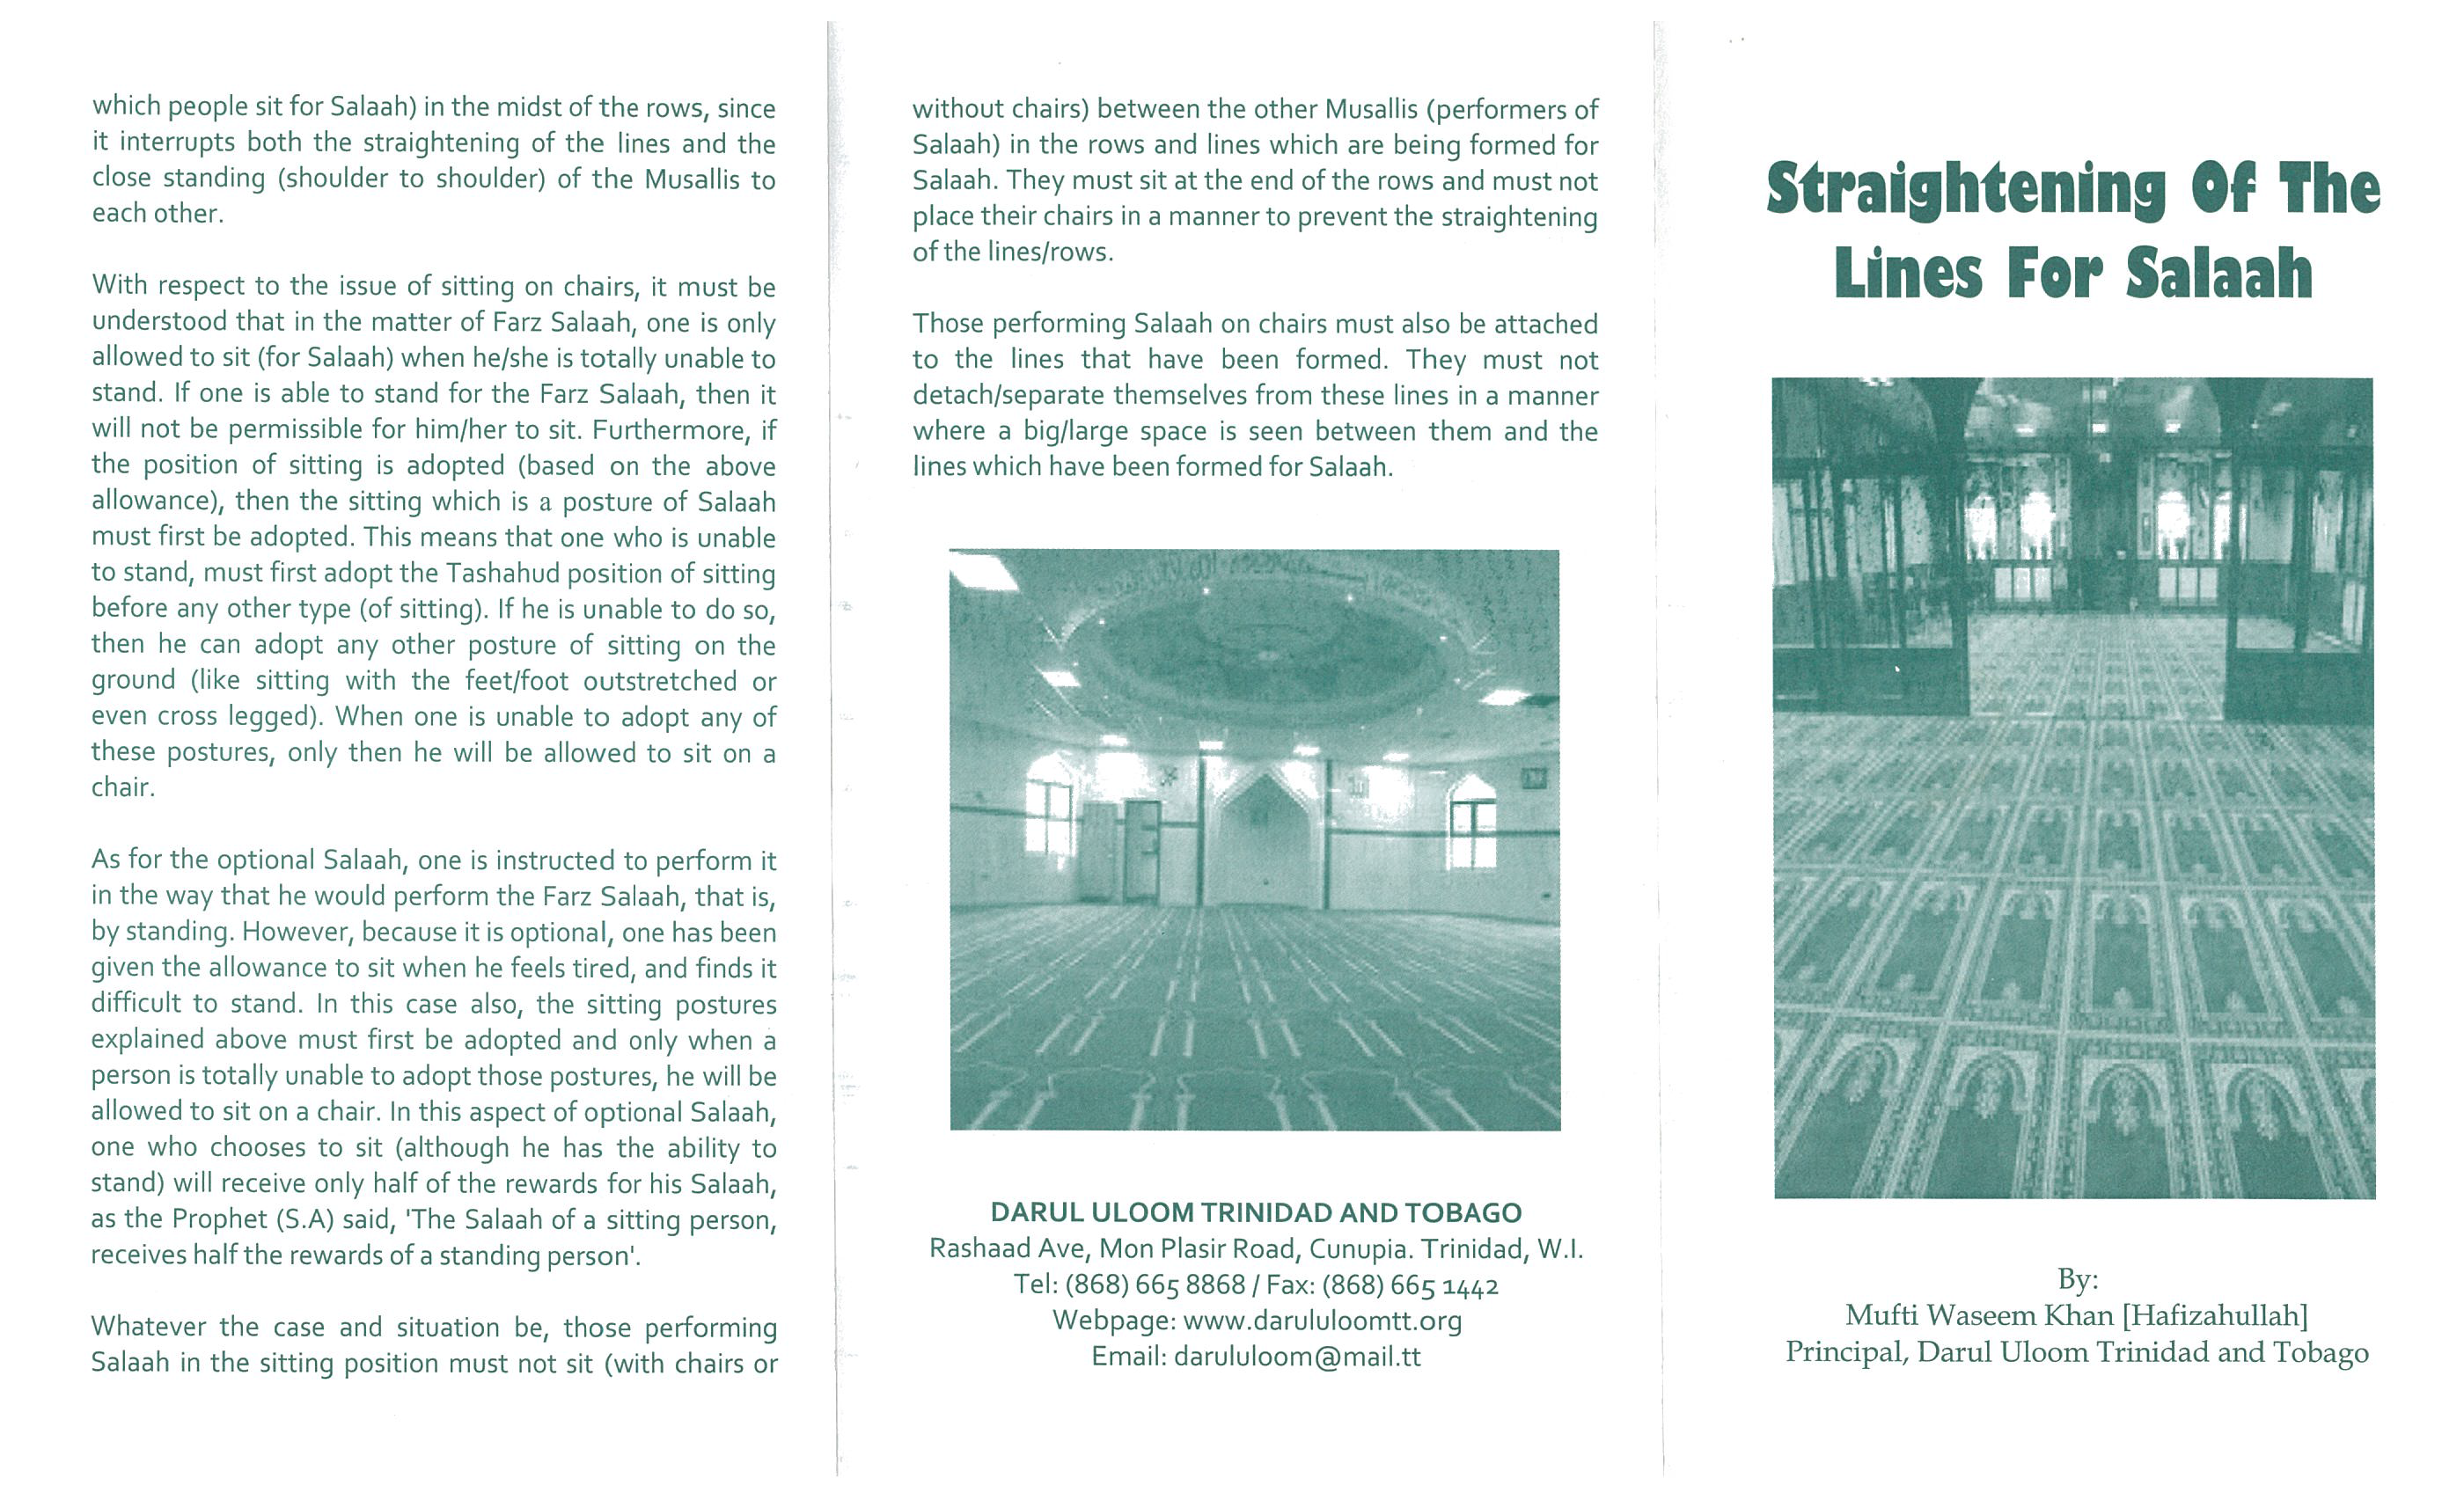 Straightening of the Lines For Salaah (pamphlet)